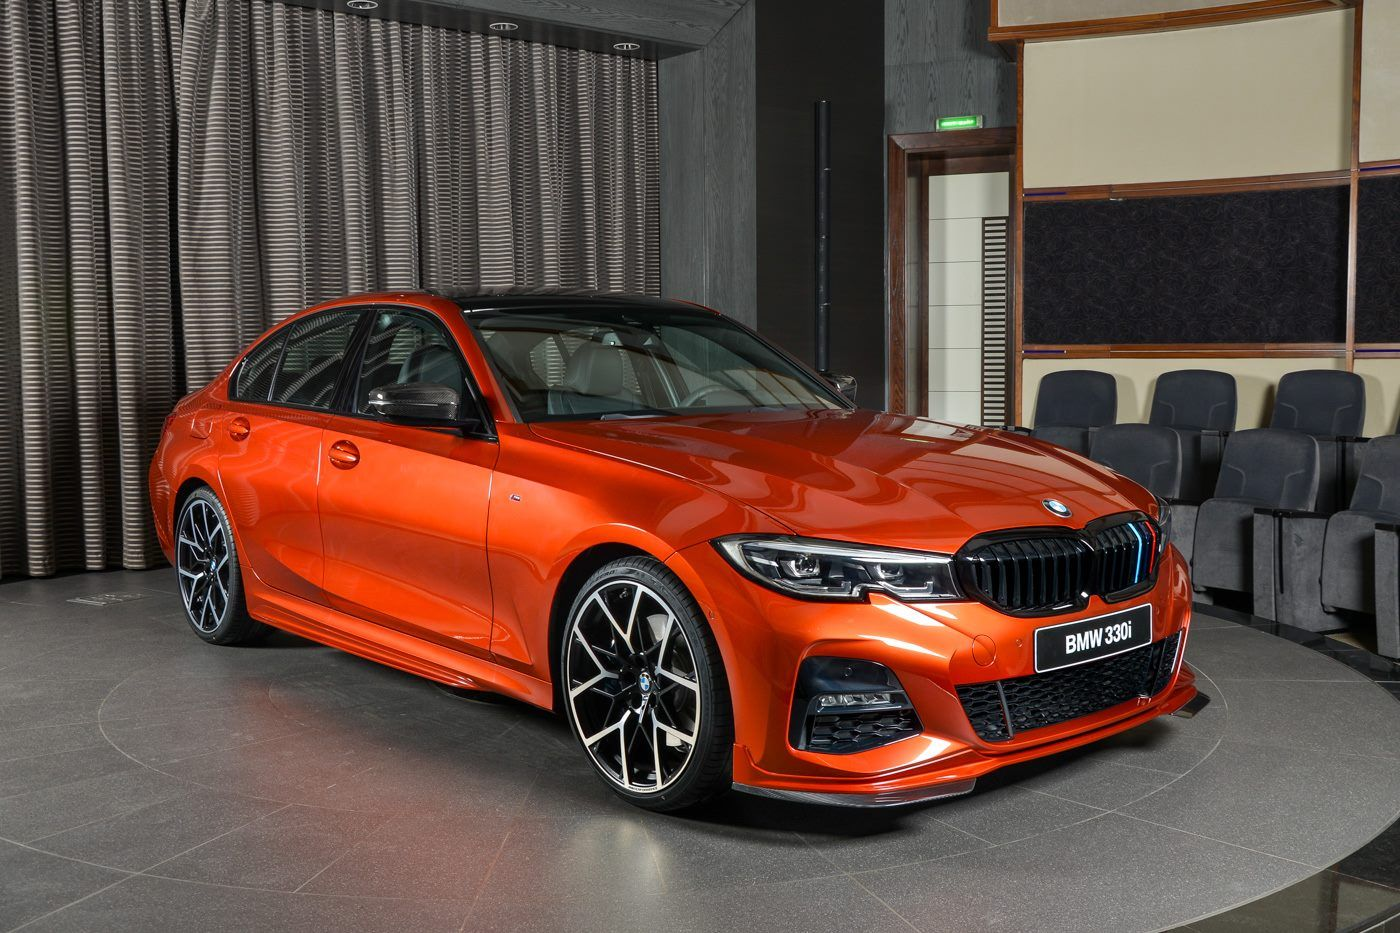 New Bmw 330i M Sport Rocks Sunset Orange Exterior With M Performance Upgrades Carscoops New Bmw Bmw Bmw 3 Series